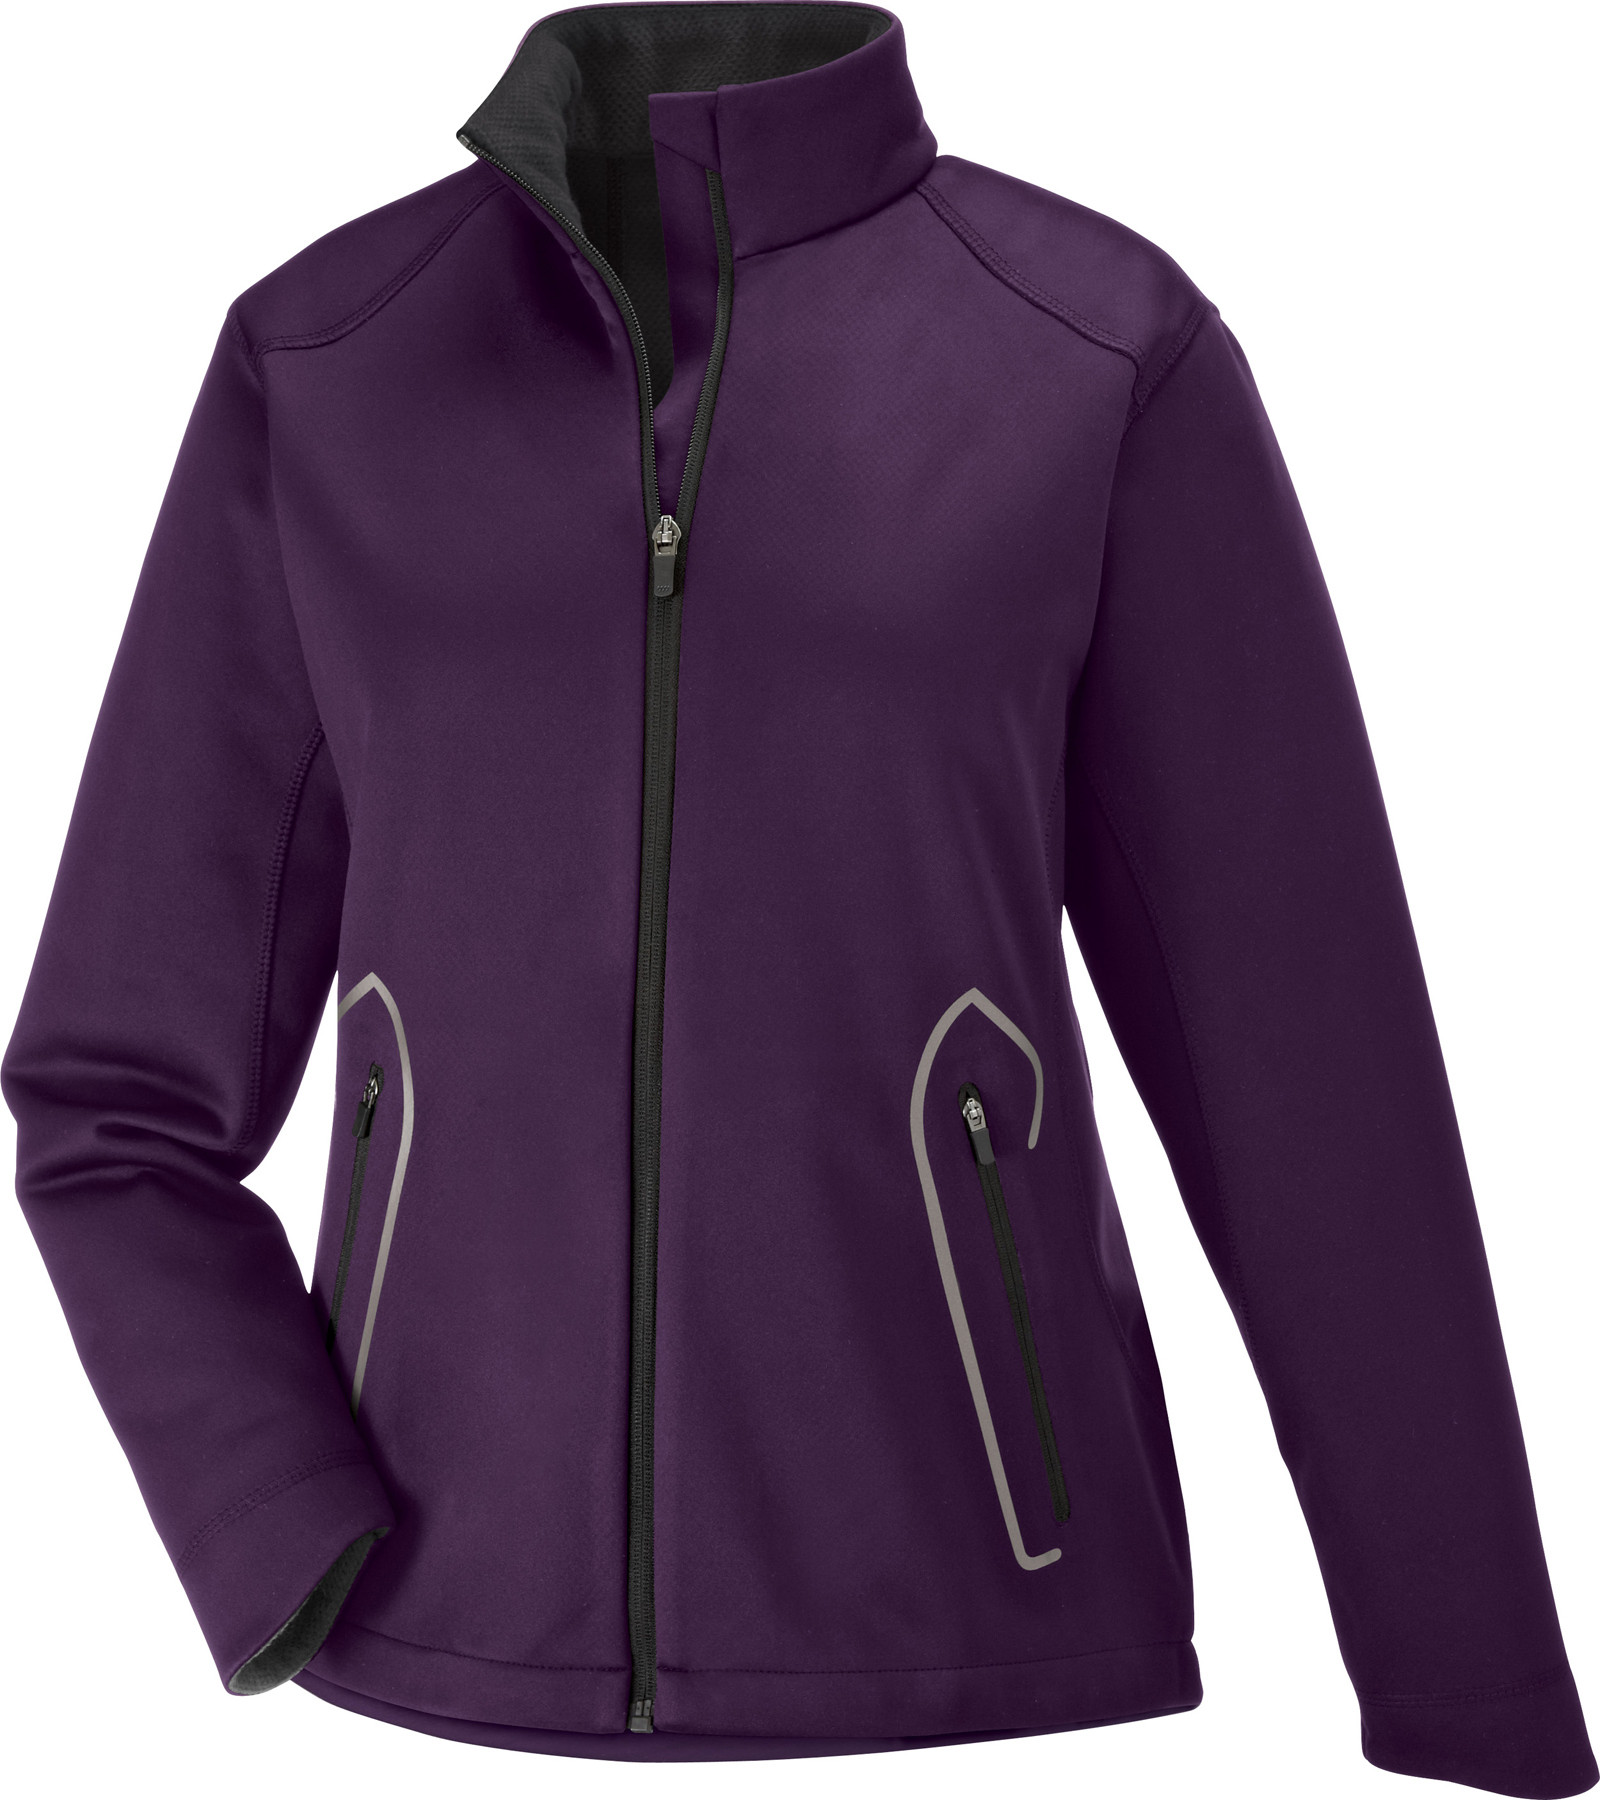 Ash City Performance Jackets 78655 - Splice Ladies' Soft Shell Jacket With Laser Welding